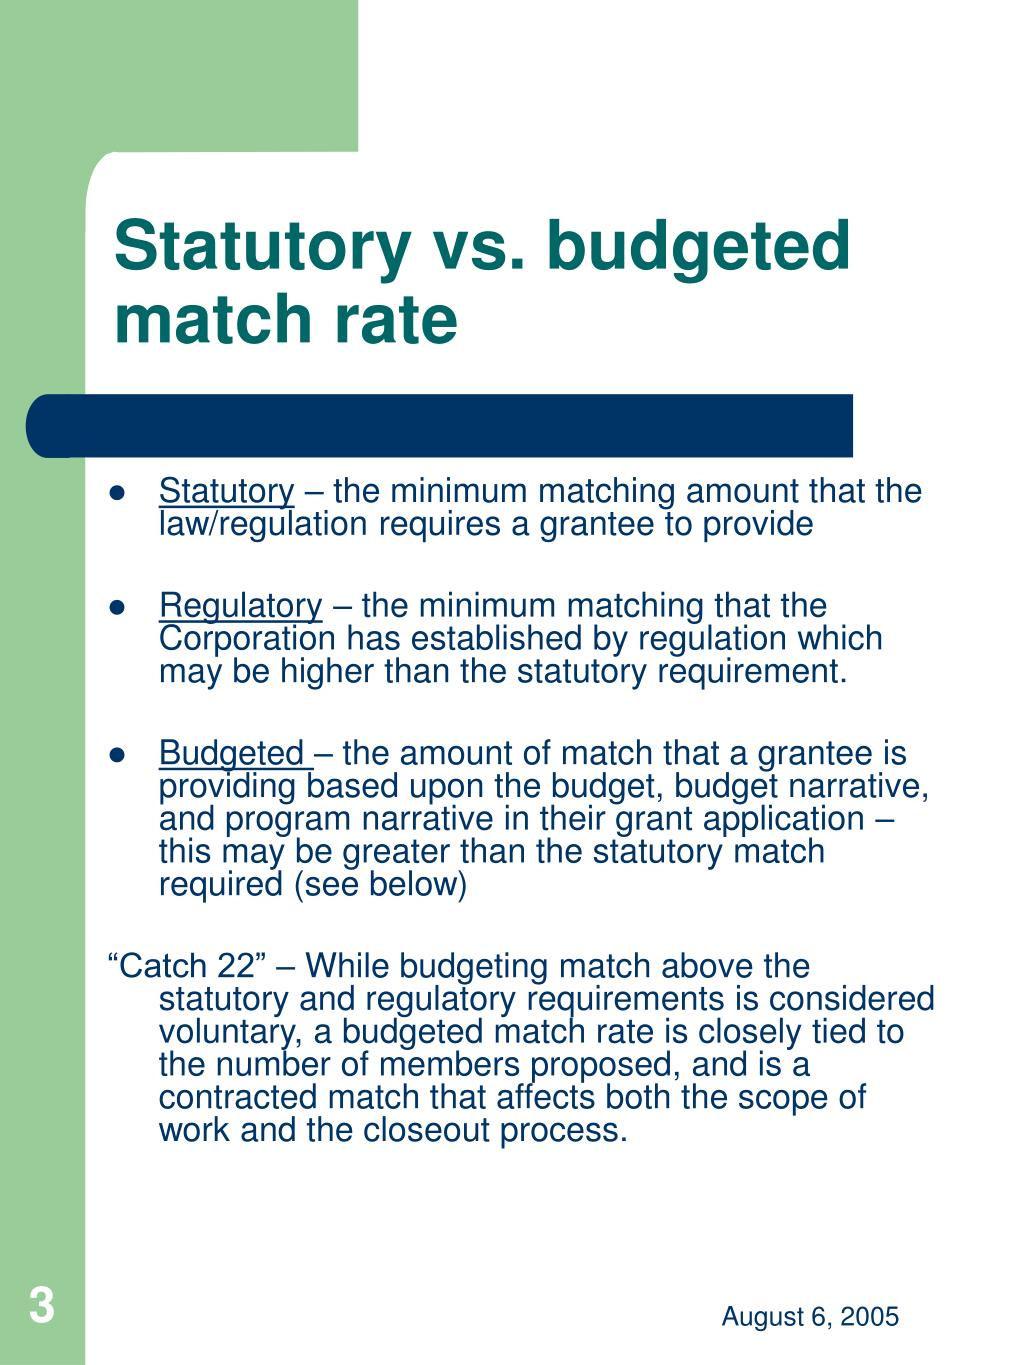 Statutory vs. budgeted match rate